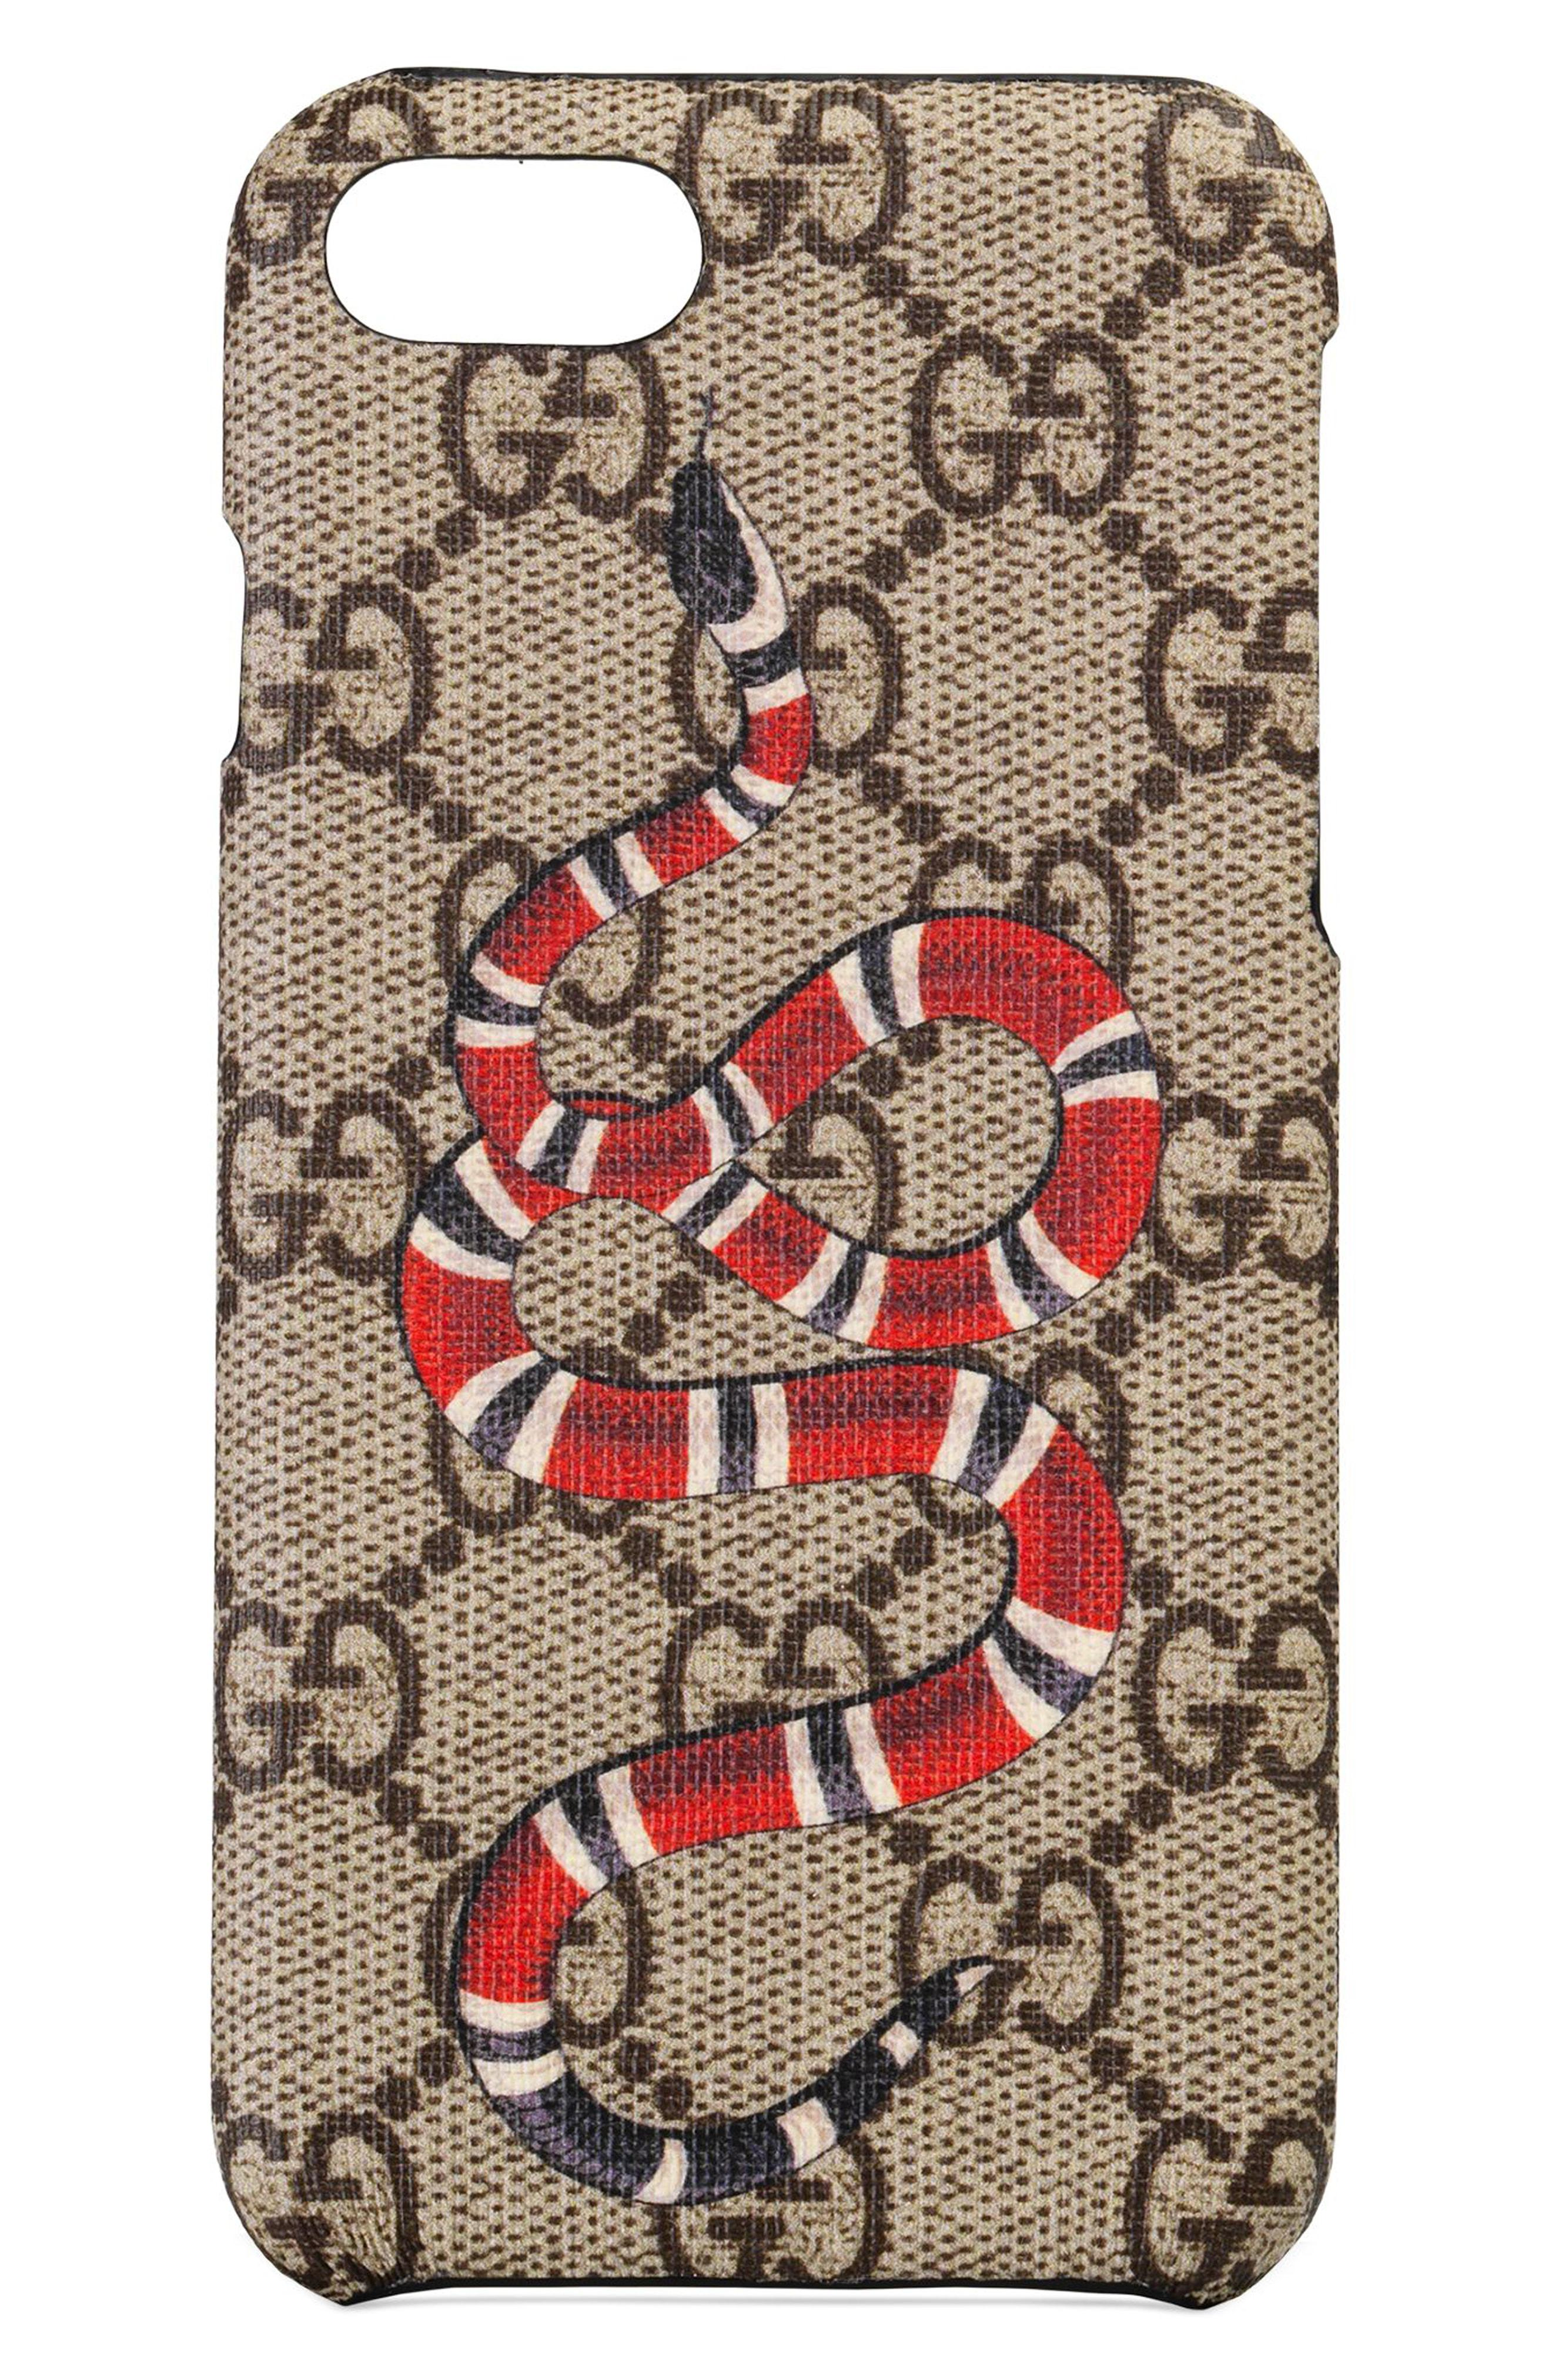 2a77fc748e89 Gucci Gg Supreme Snake Iphone 8 Case - for Men - Lyst